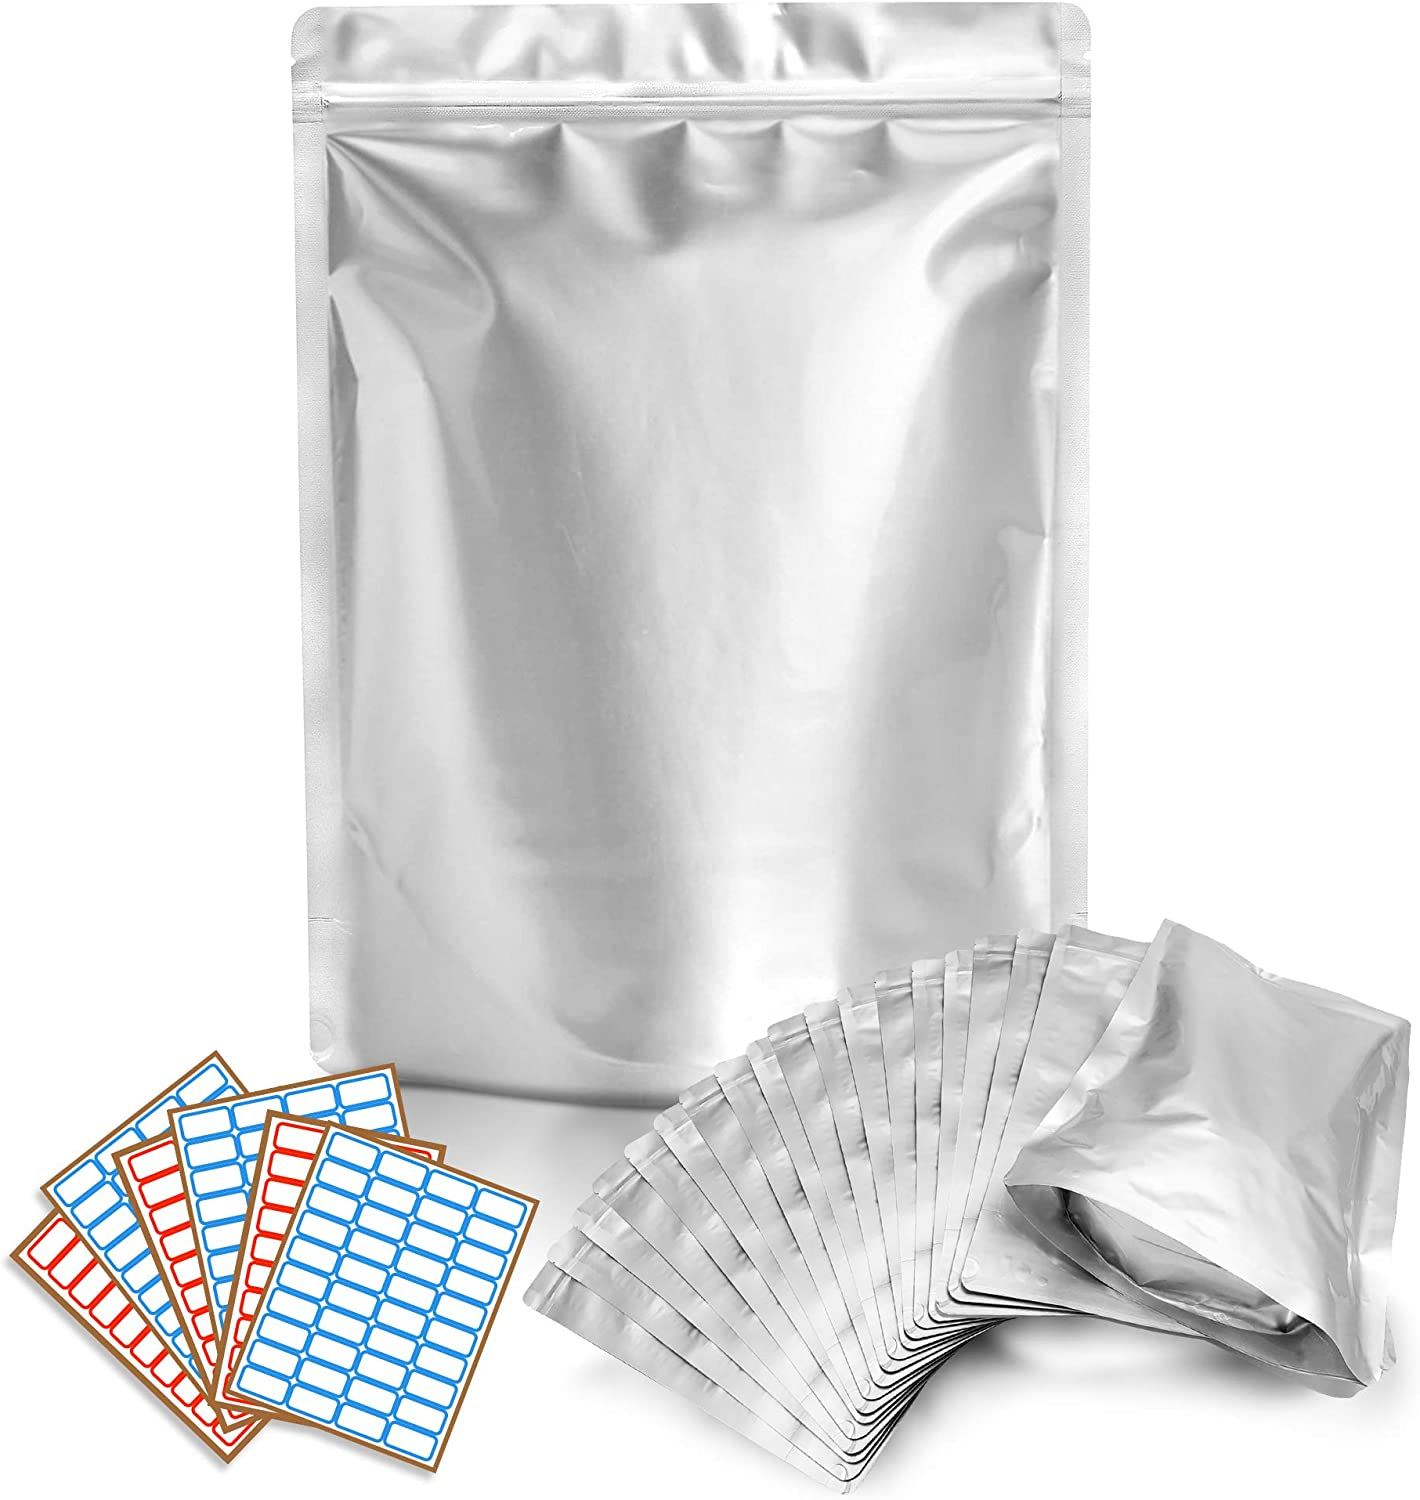 50 Mylar Bags 1 QUART - Extra Thick 7.4 Mil - 7